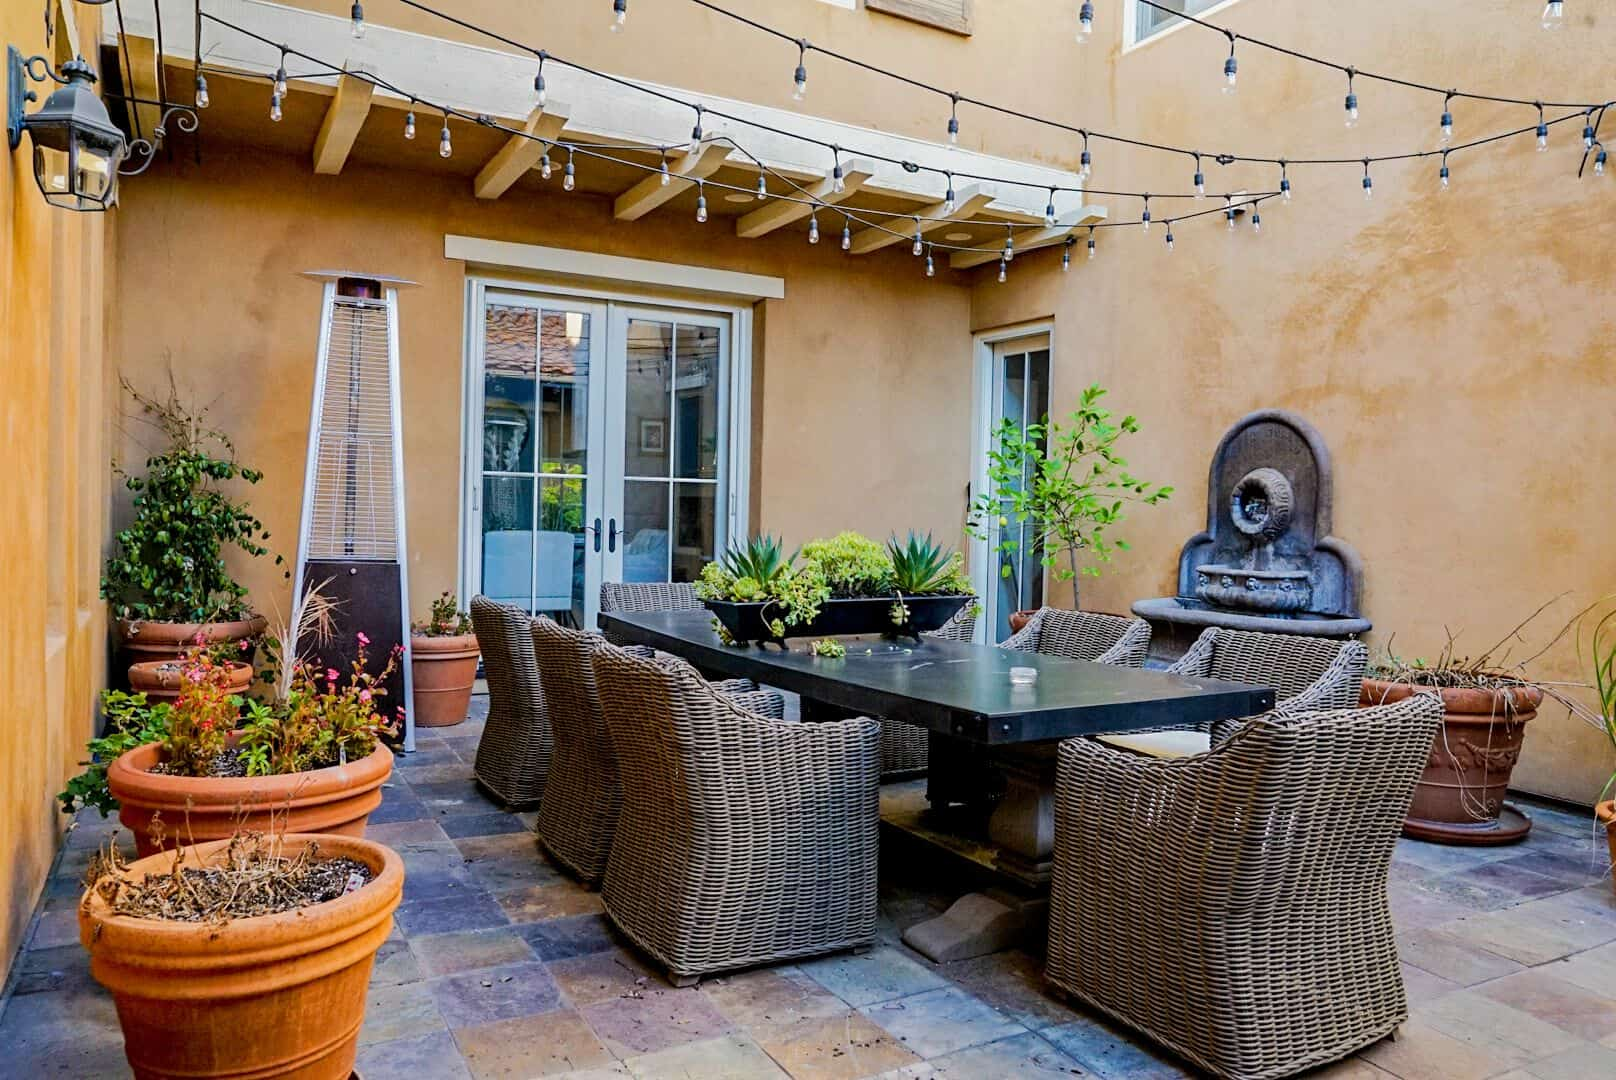 Outside, there's an outdoor dining offering a rectangular dining table set paired with rattan seats. Images courtesy of Toptenrealestatedeals.com.